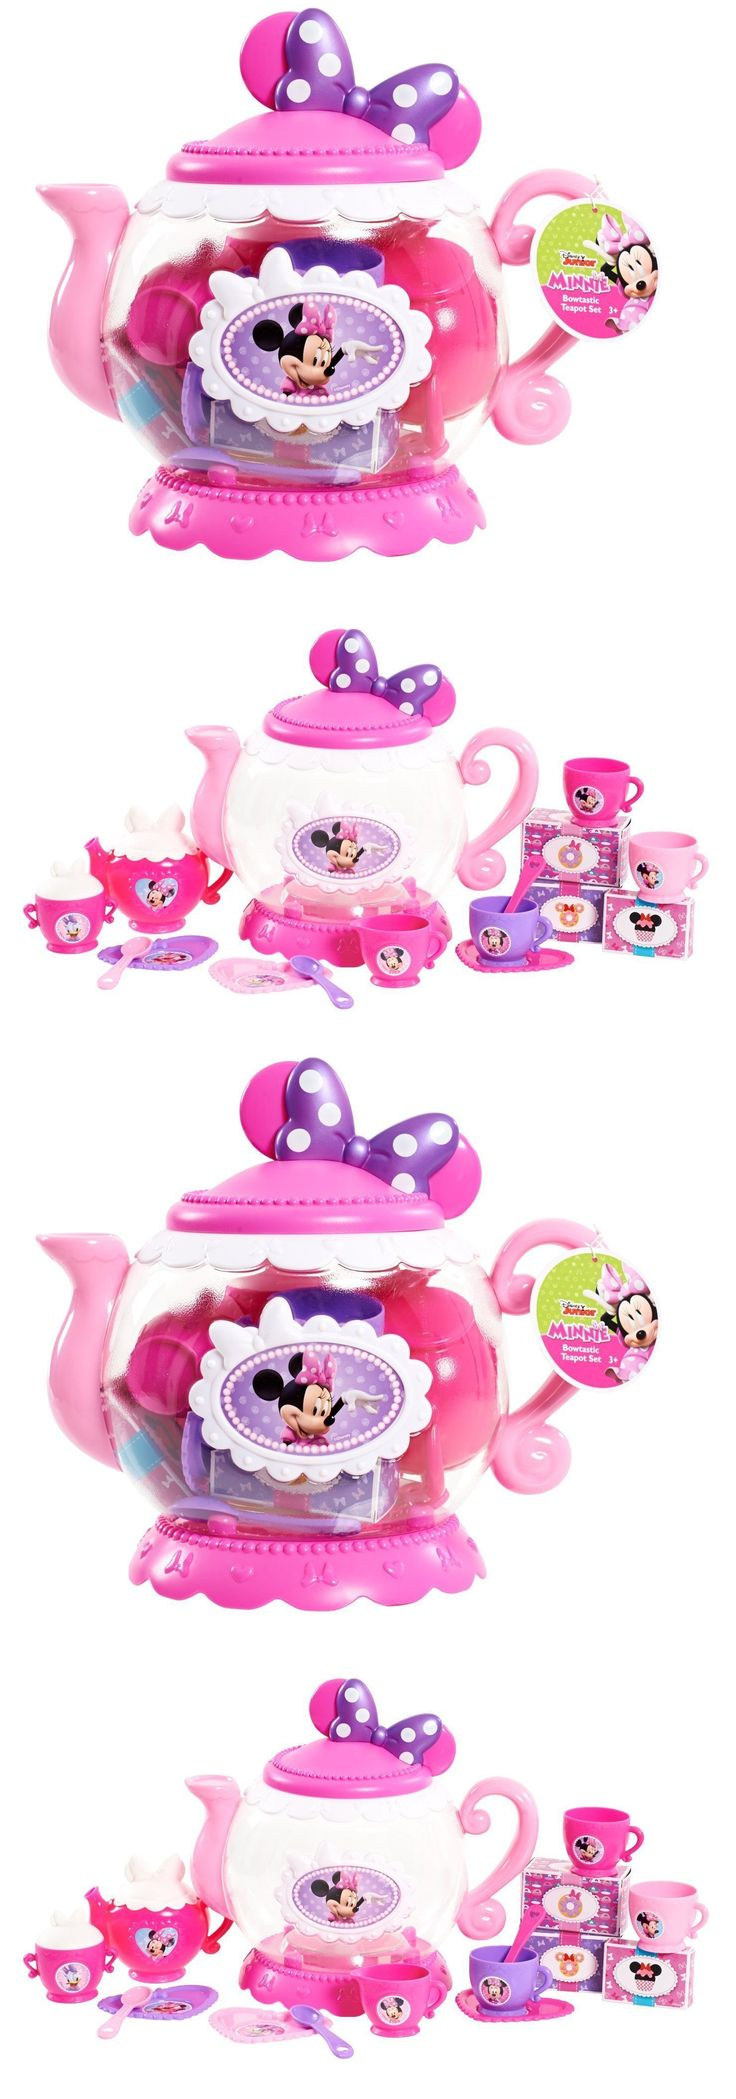 Dishes Tea Sets 19171: Minnie Mouse Teapot Tea Party Play Set Kids Pretend Play Girls -> BUY IT NOW ONLY: $35.51 on eBay!